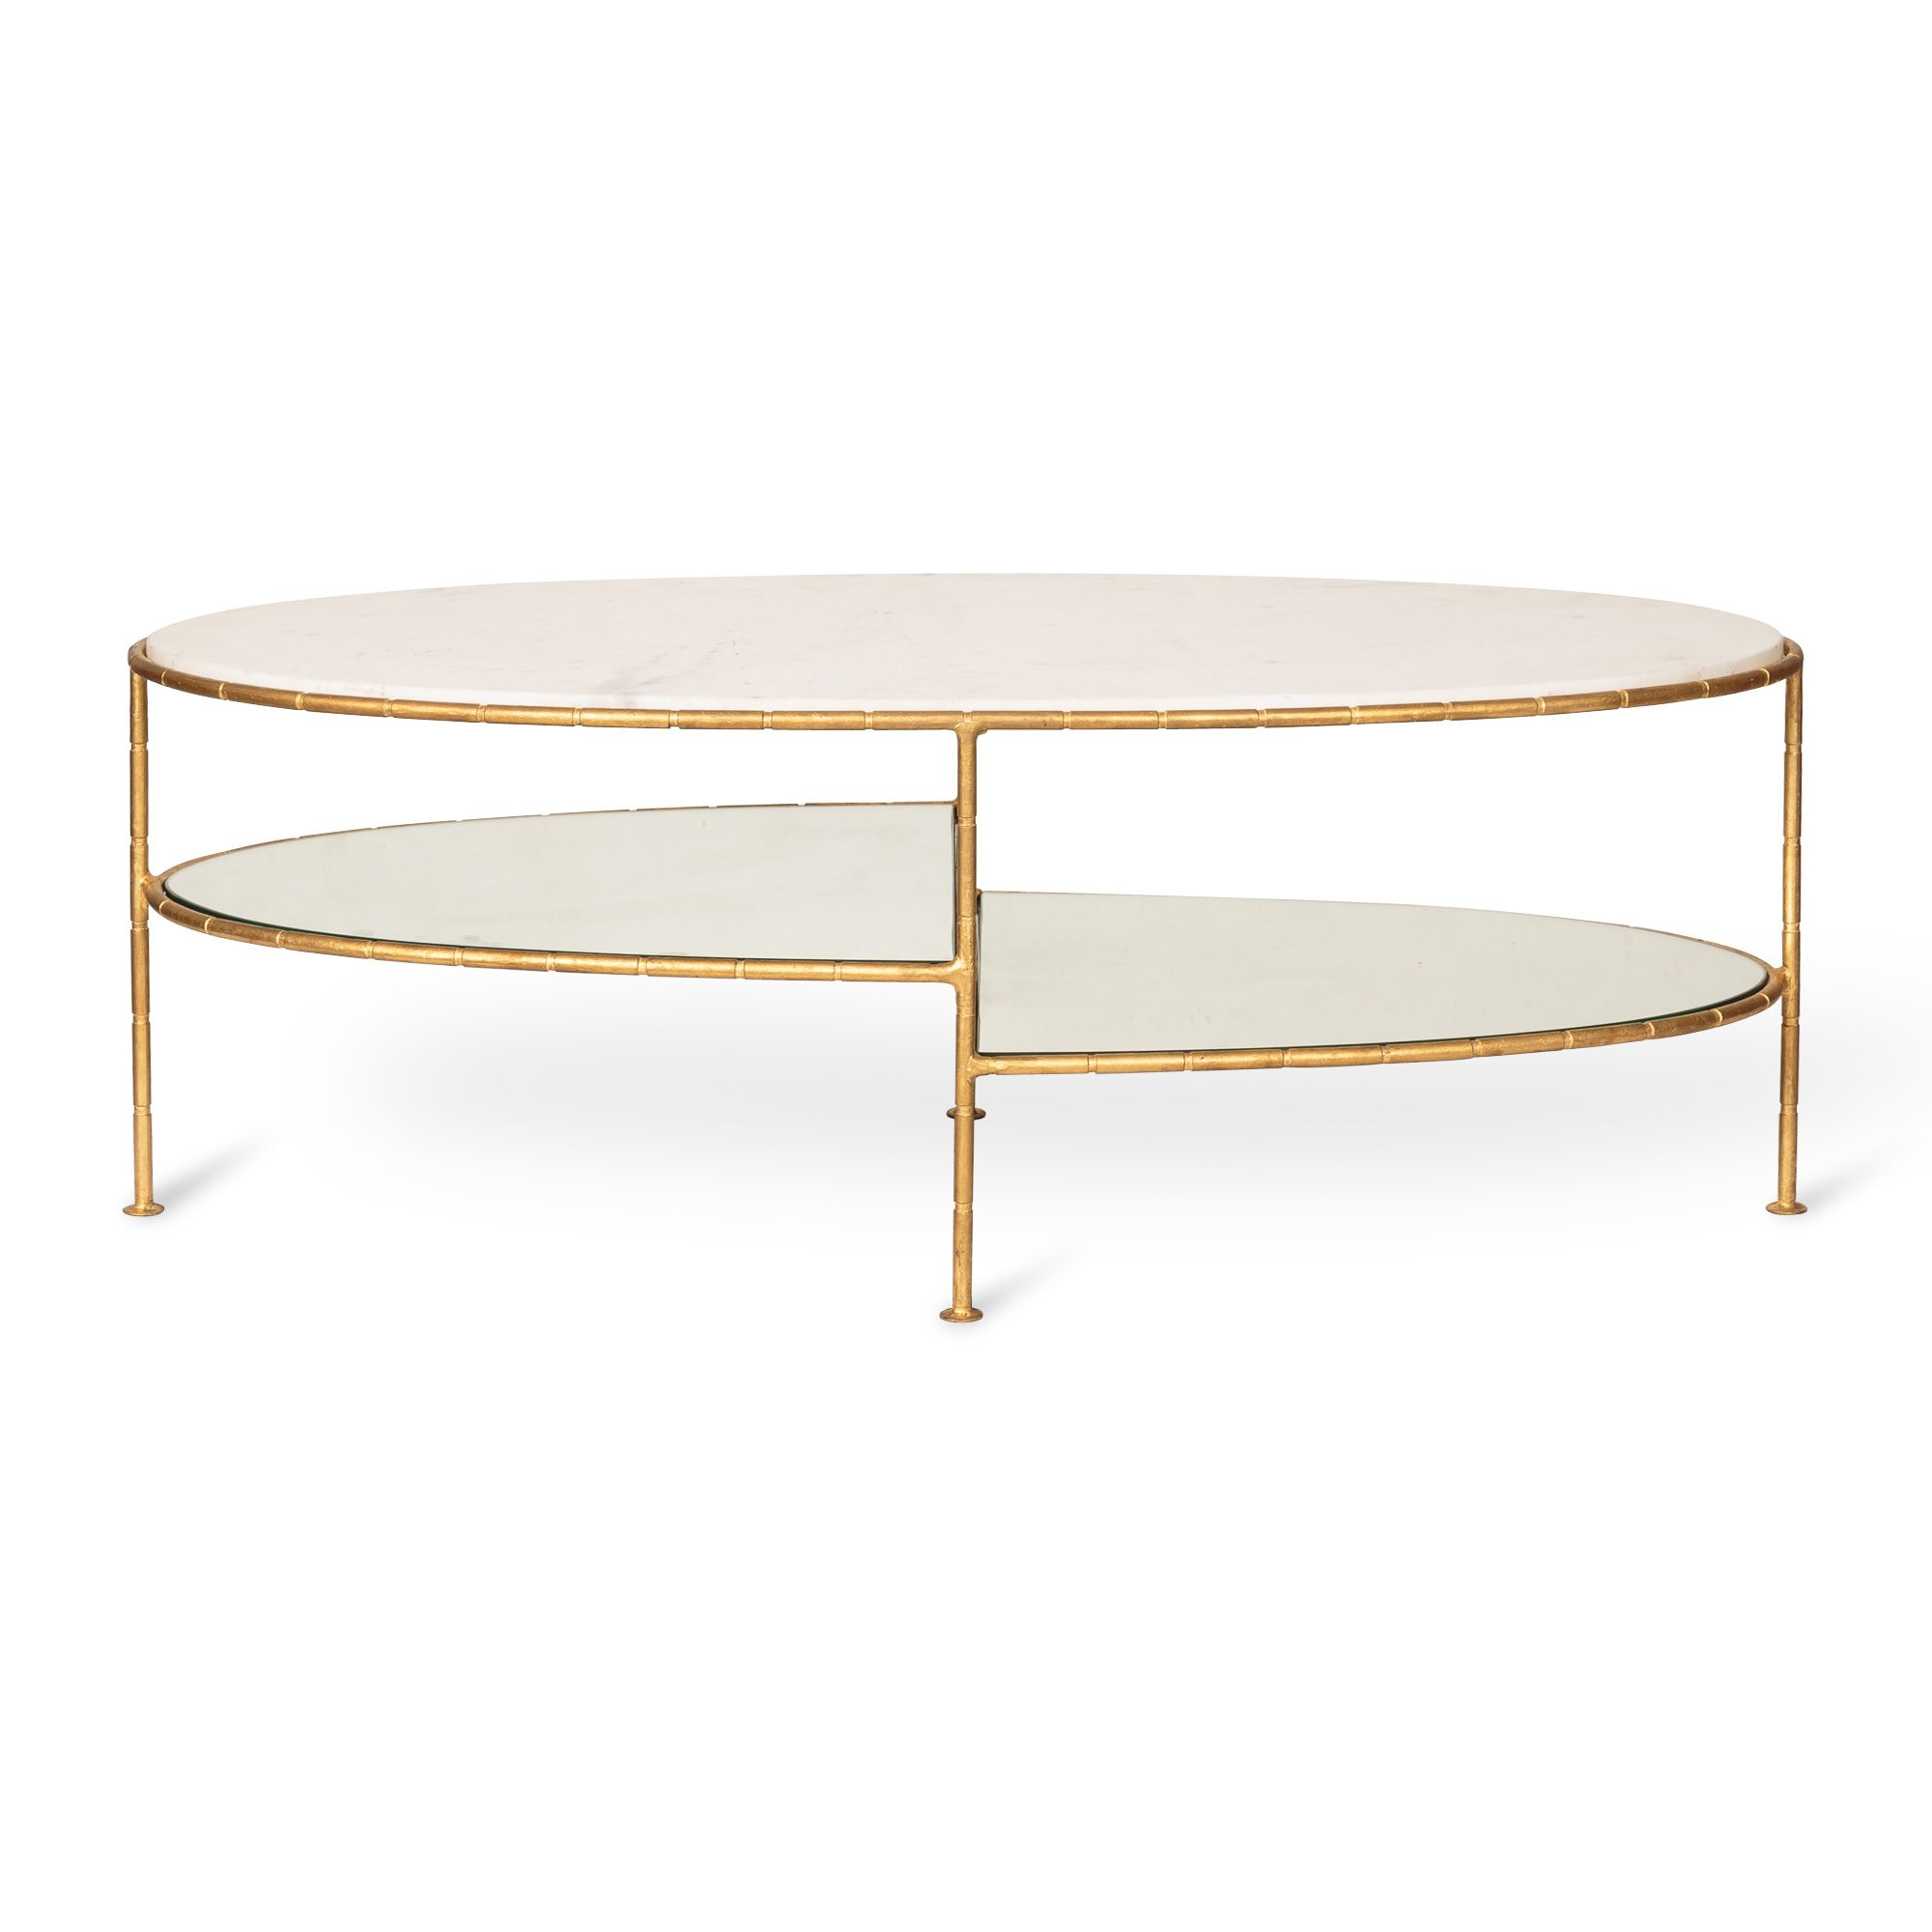 White Luxe Three Oval Bamboo Coffee Table Oliver Bonas Coffee Table Bamboo Coffee Table Dining Room Accessories [ 2000 x 2000 Pixel ]